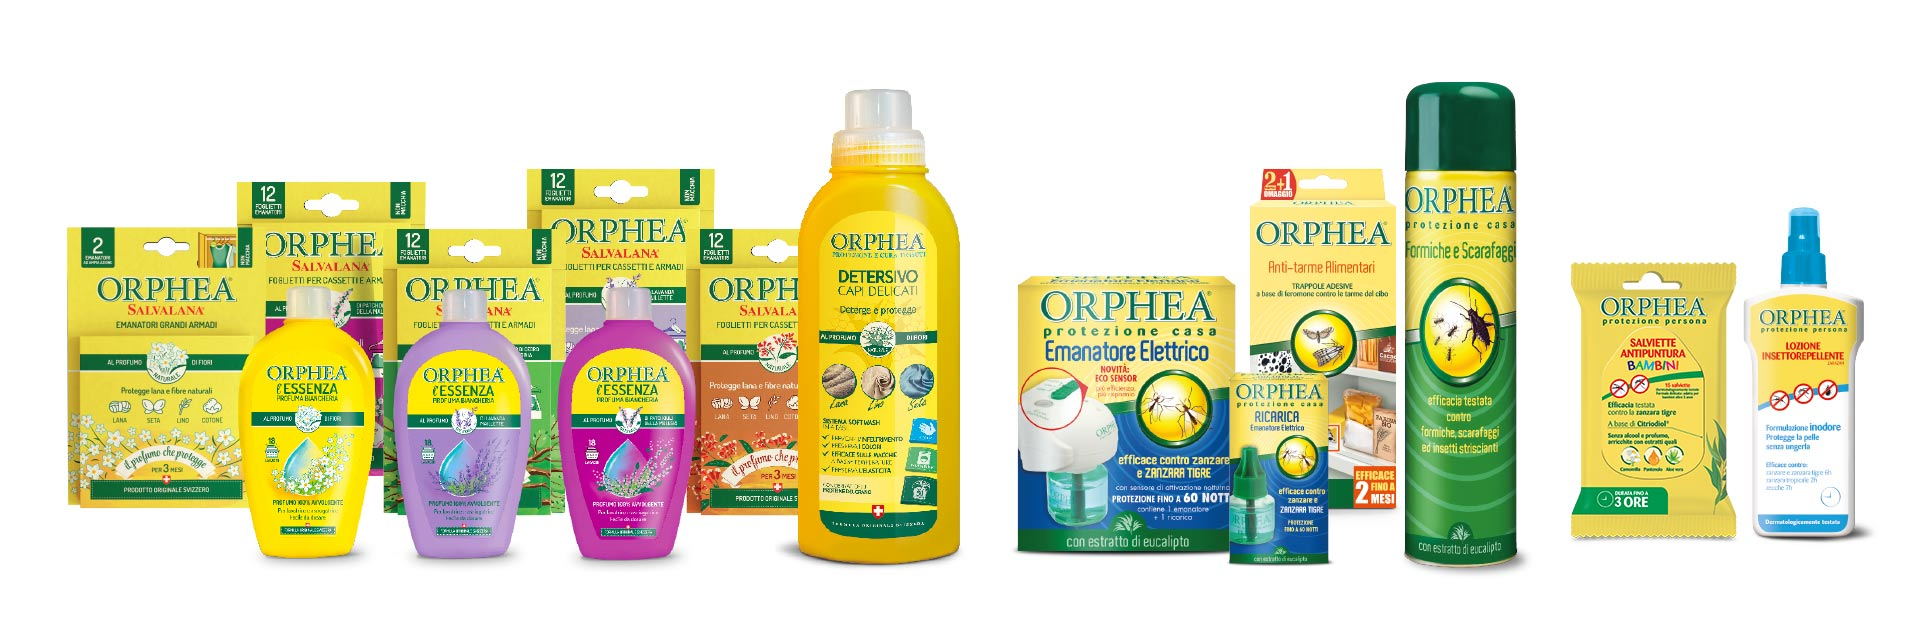 Orphea®: the business product line.